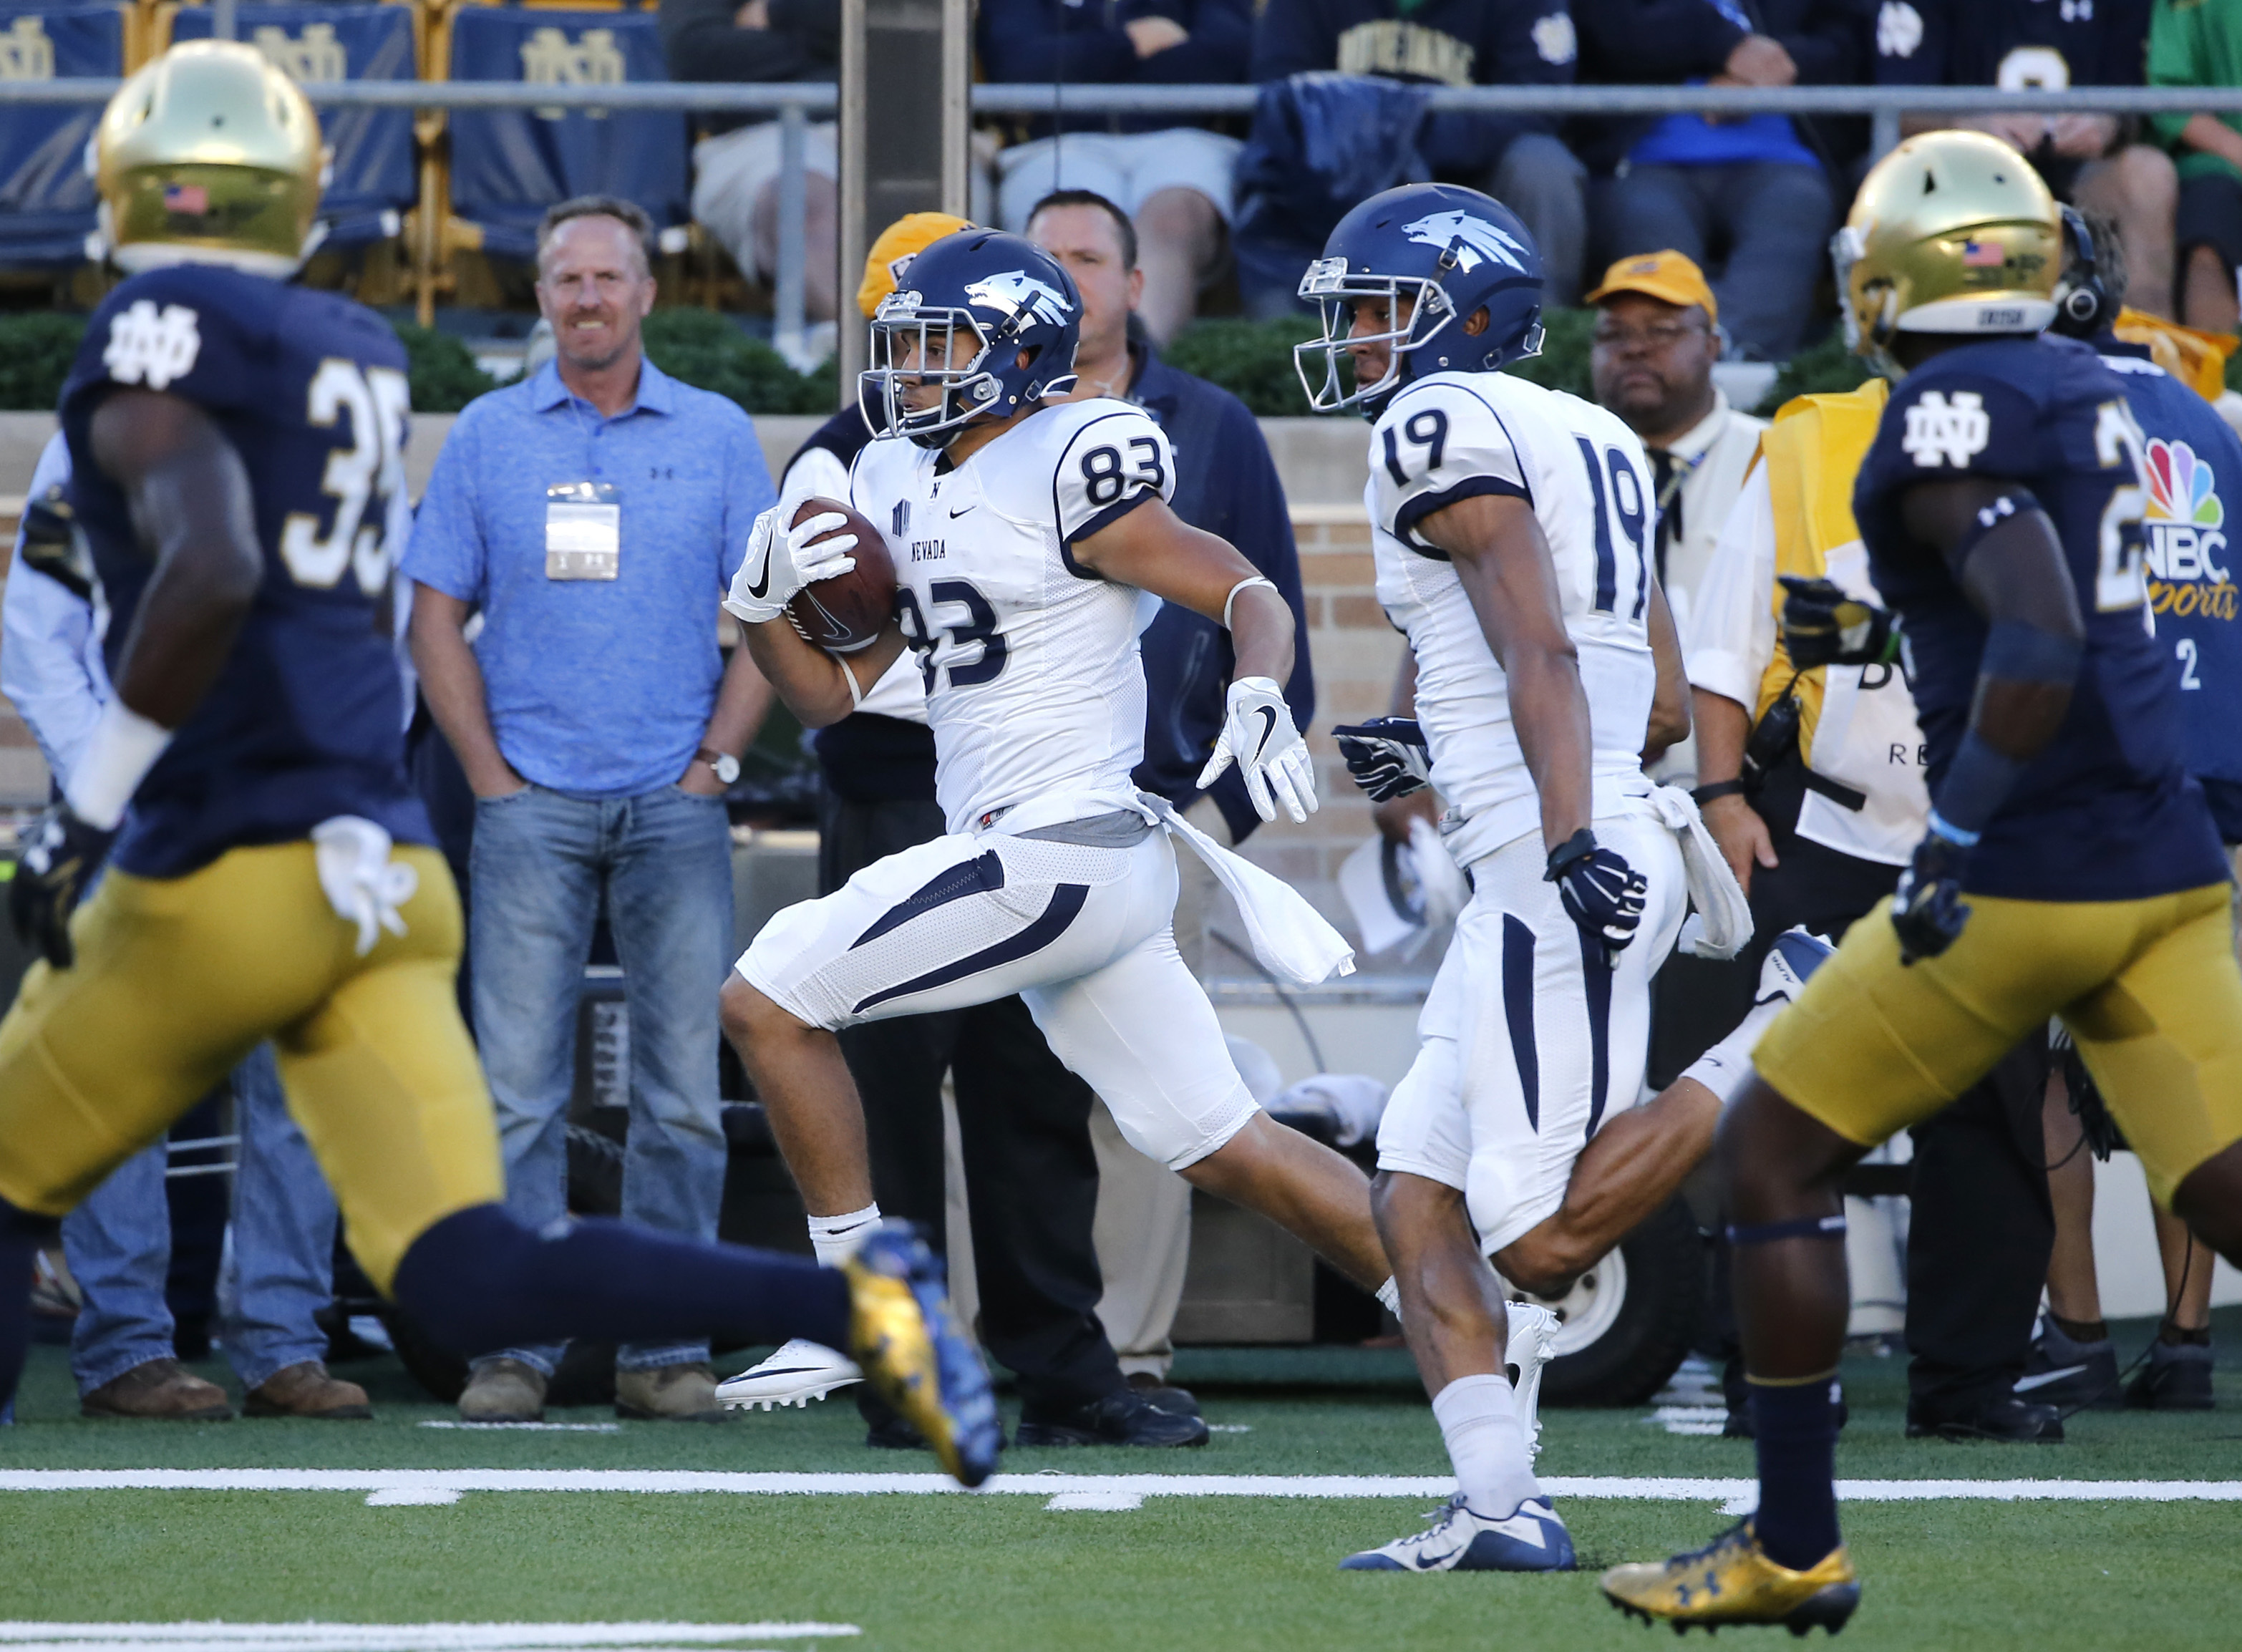 Nevada wide receiver Andrew Celis (83) heads down the sidelines on a 68-yard pass play from Ty Gangi as teammate Wyatt Demps (19) follows during the second half of an NCAA college football game against Notre Dame Saturday, Sept. 10, 2016, in South Bend, I